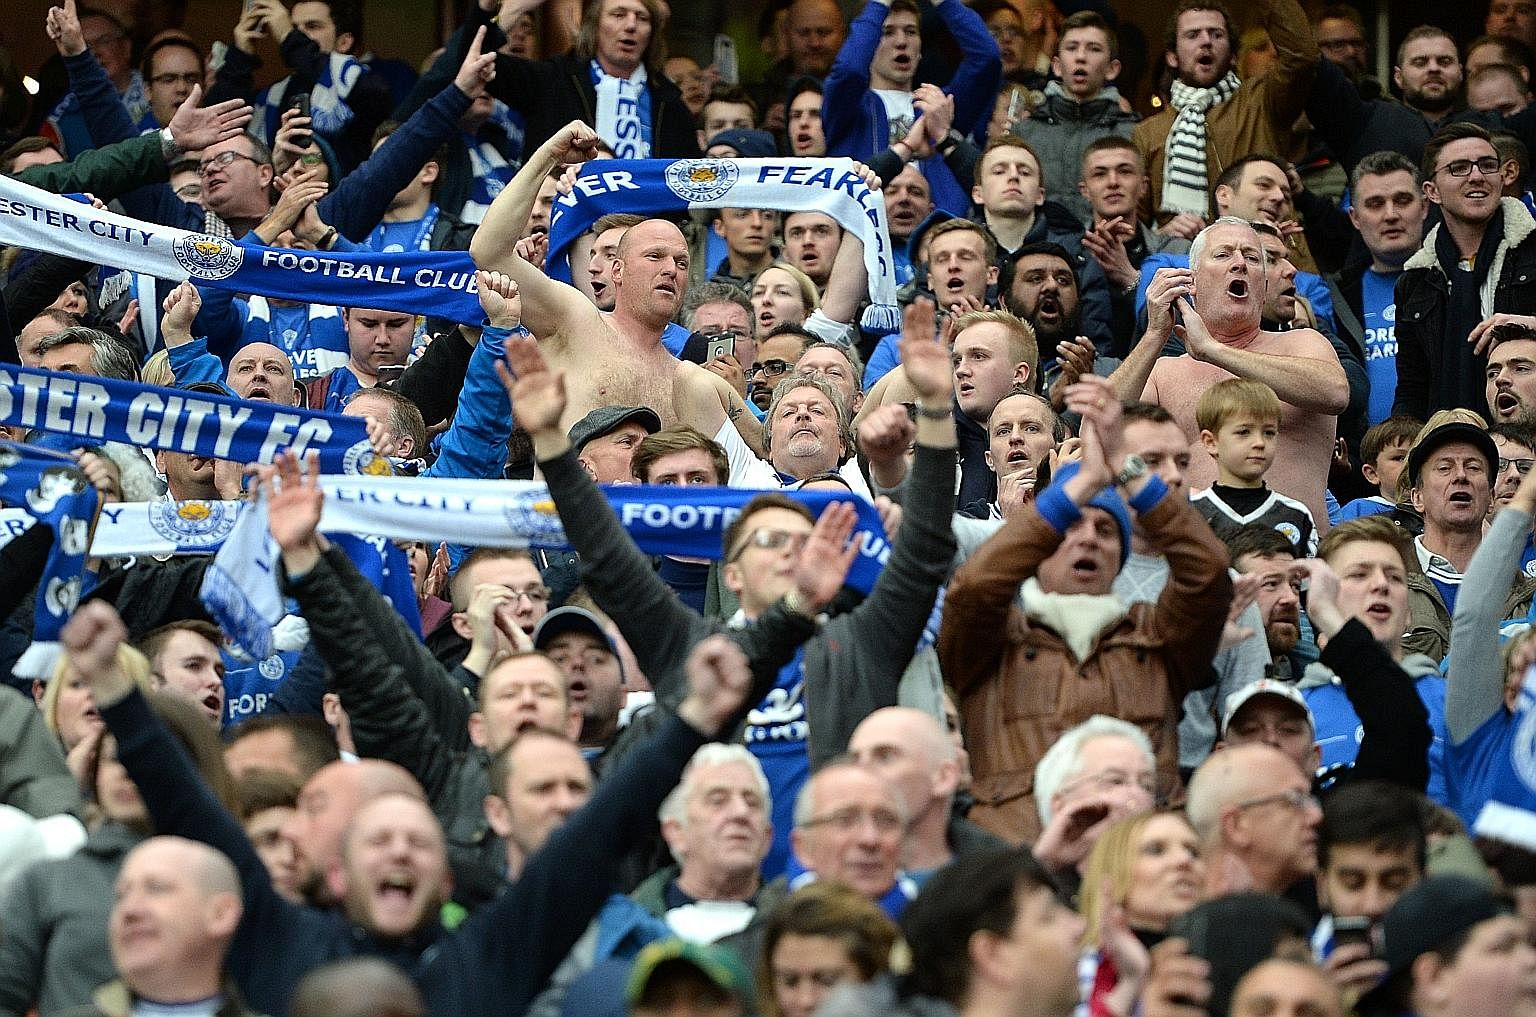 Leicester fans cheering after the English Premier League football match between Leicester City and Manchester United in Manchester on Sunday. The match ended 1-1.